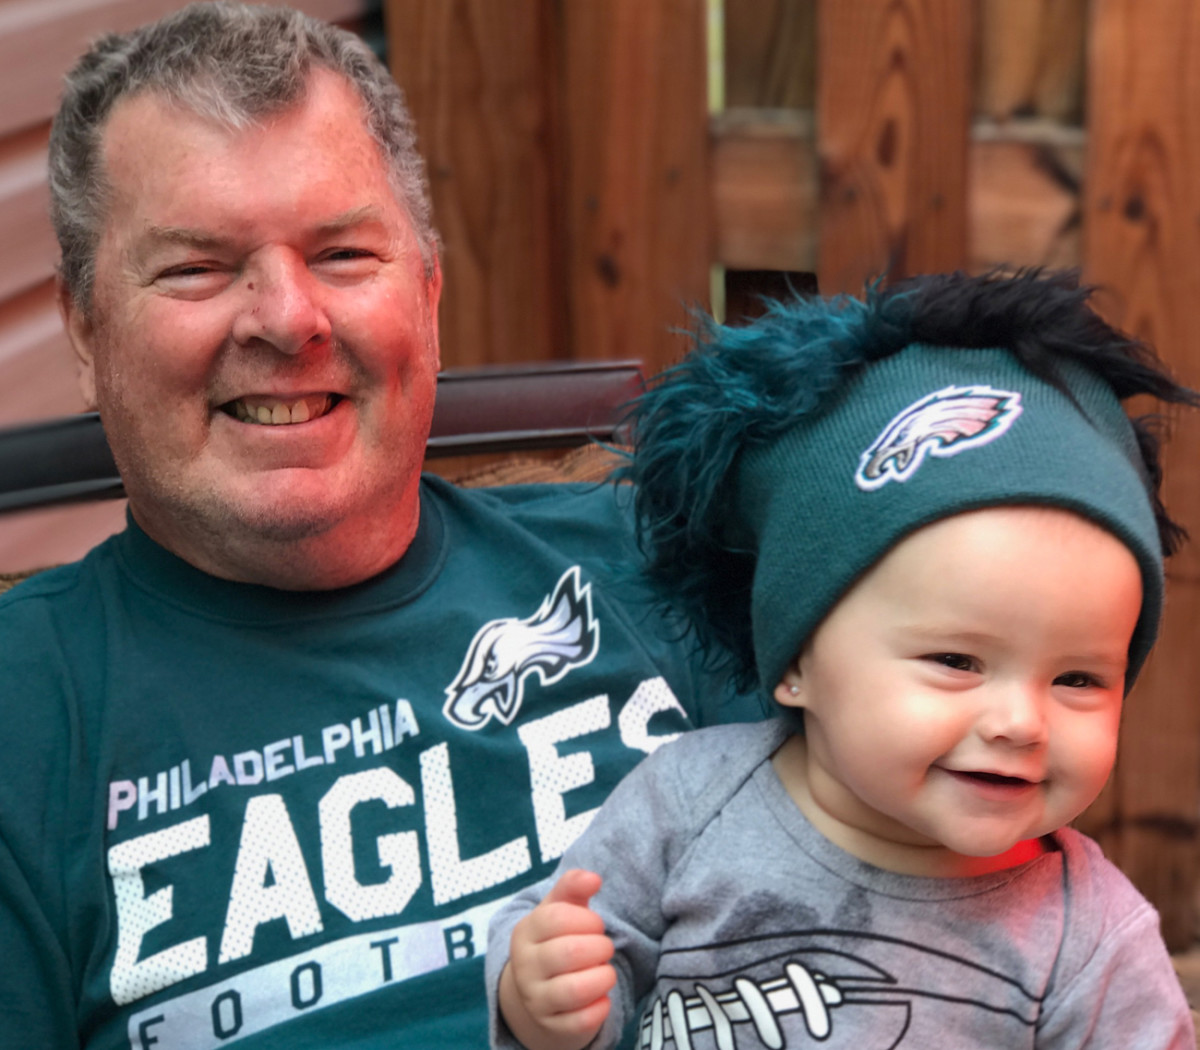 Wayne with granddaughter Henley, a budding Eagles fan.